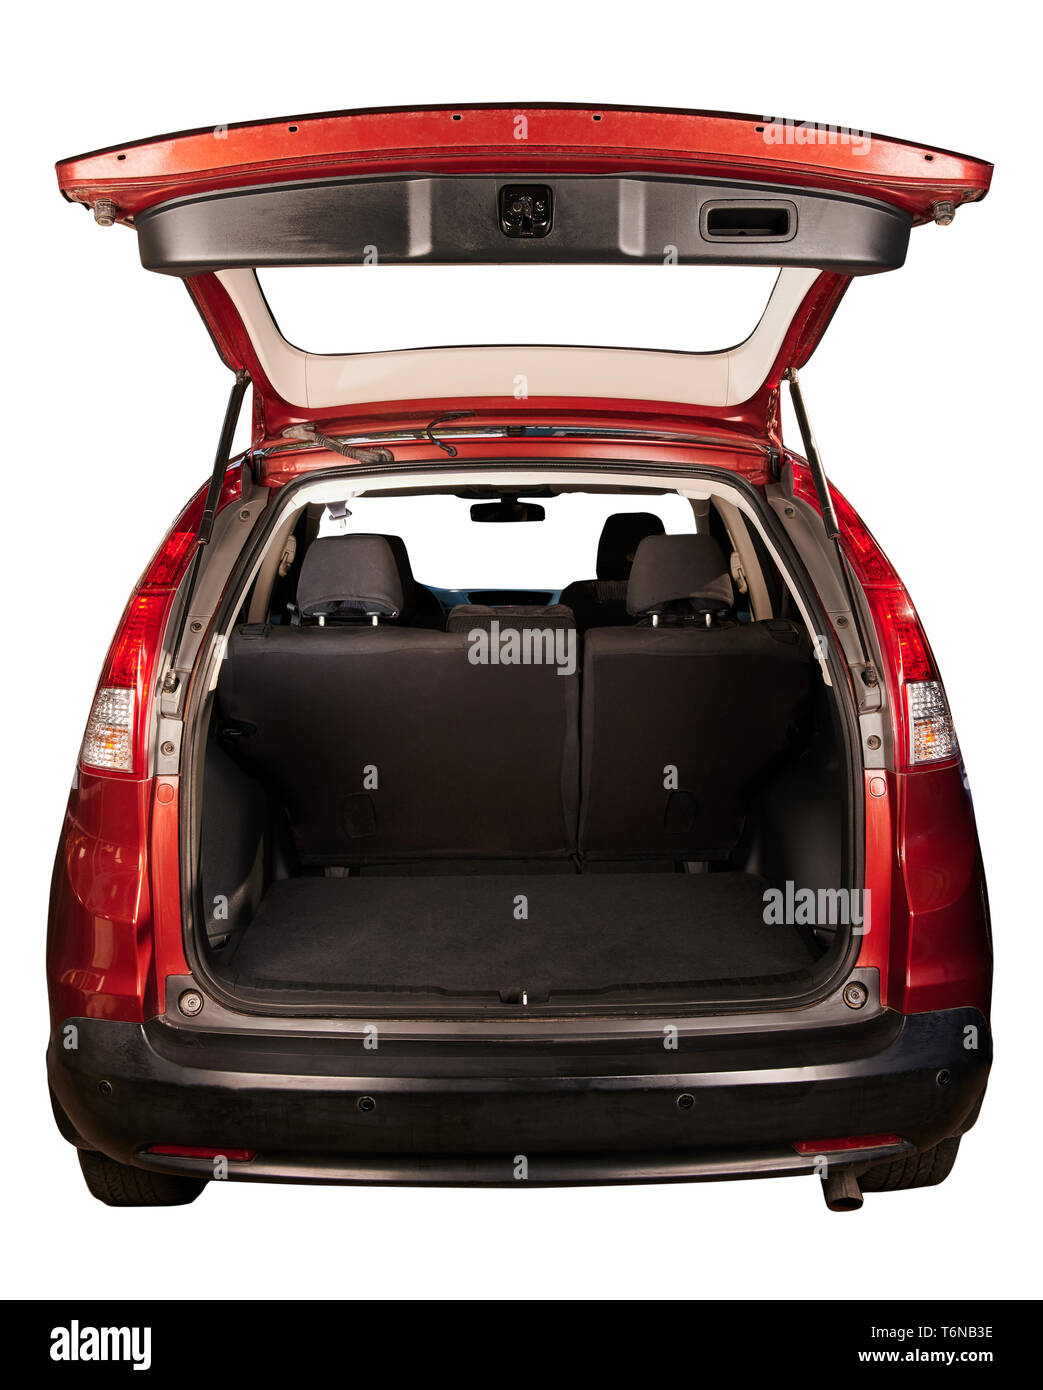 Rear view of SUV red car with open trunk isolated - Stock Image